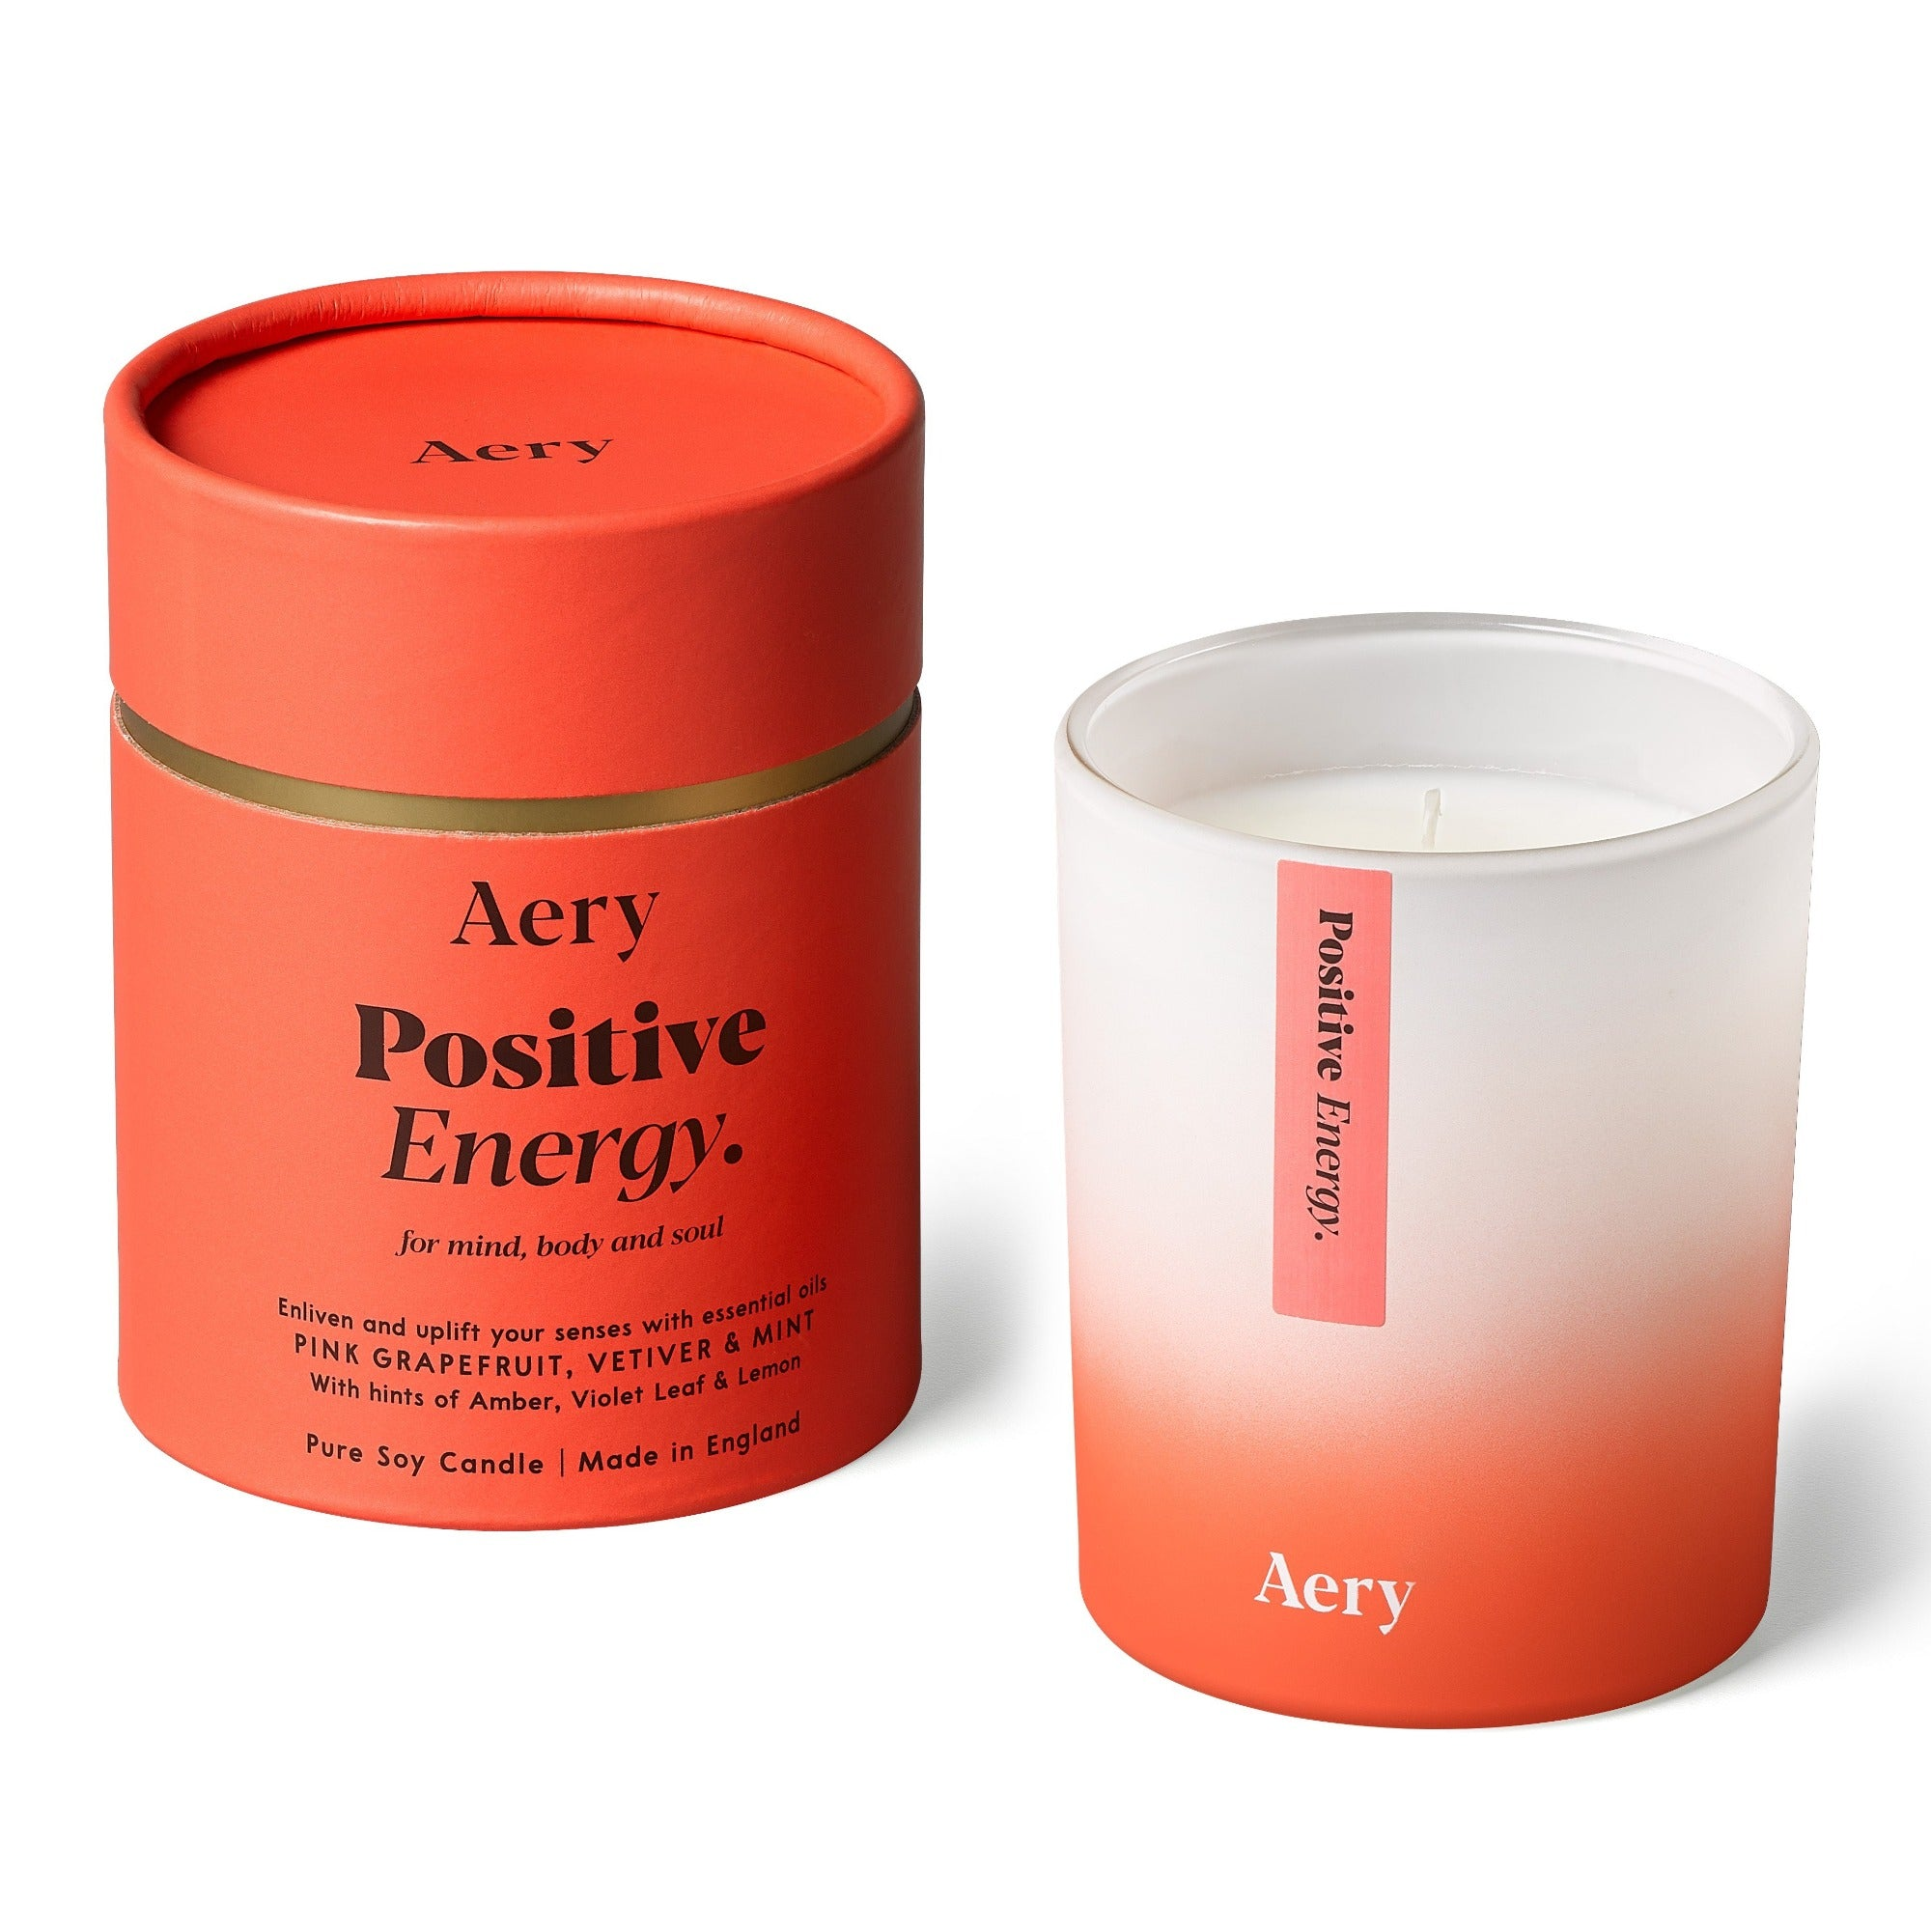 Aery Positive Energy Scented Candle - pink grapefruit  vetiver mint - pure soy wax - made in England